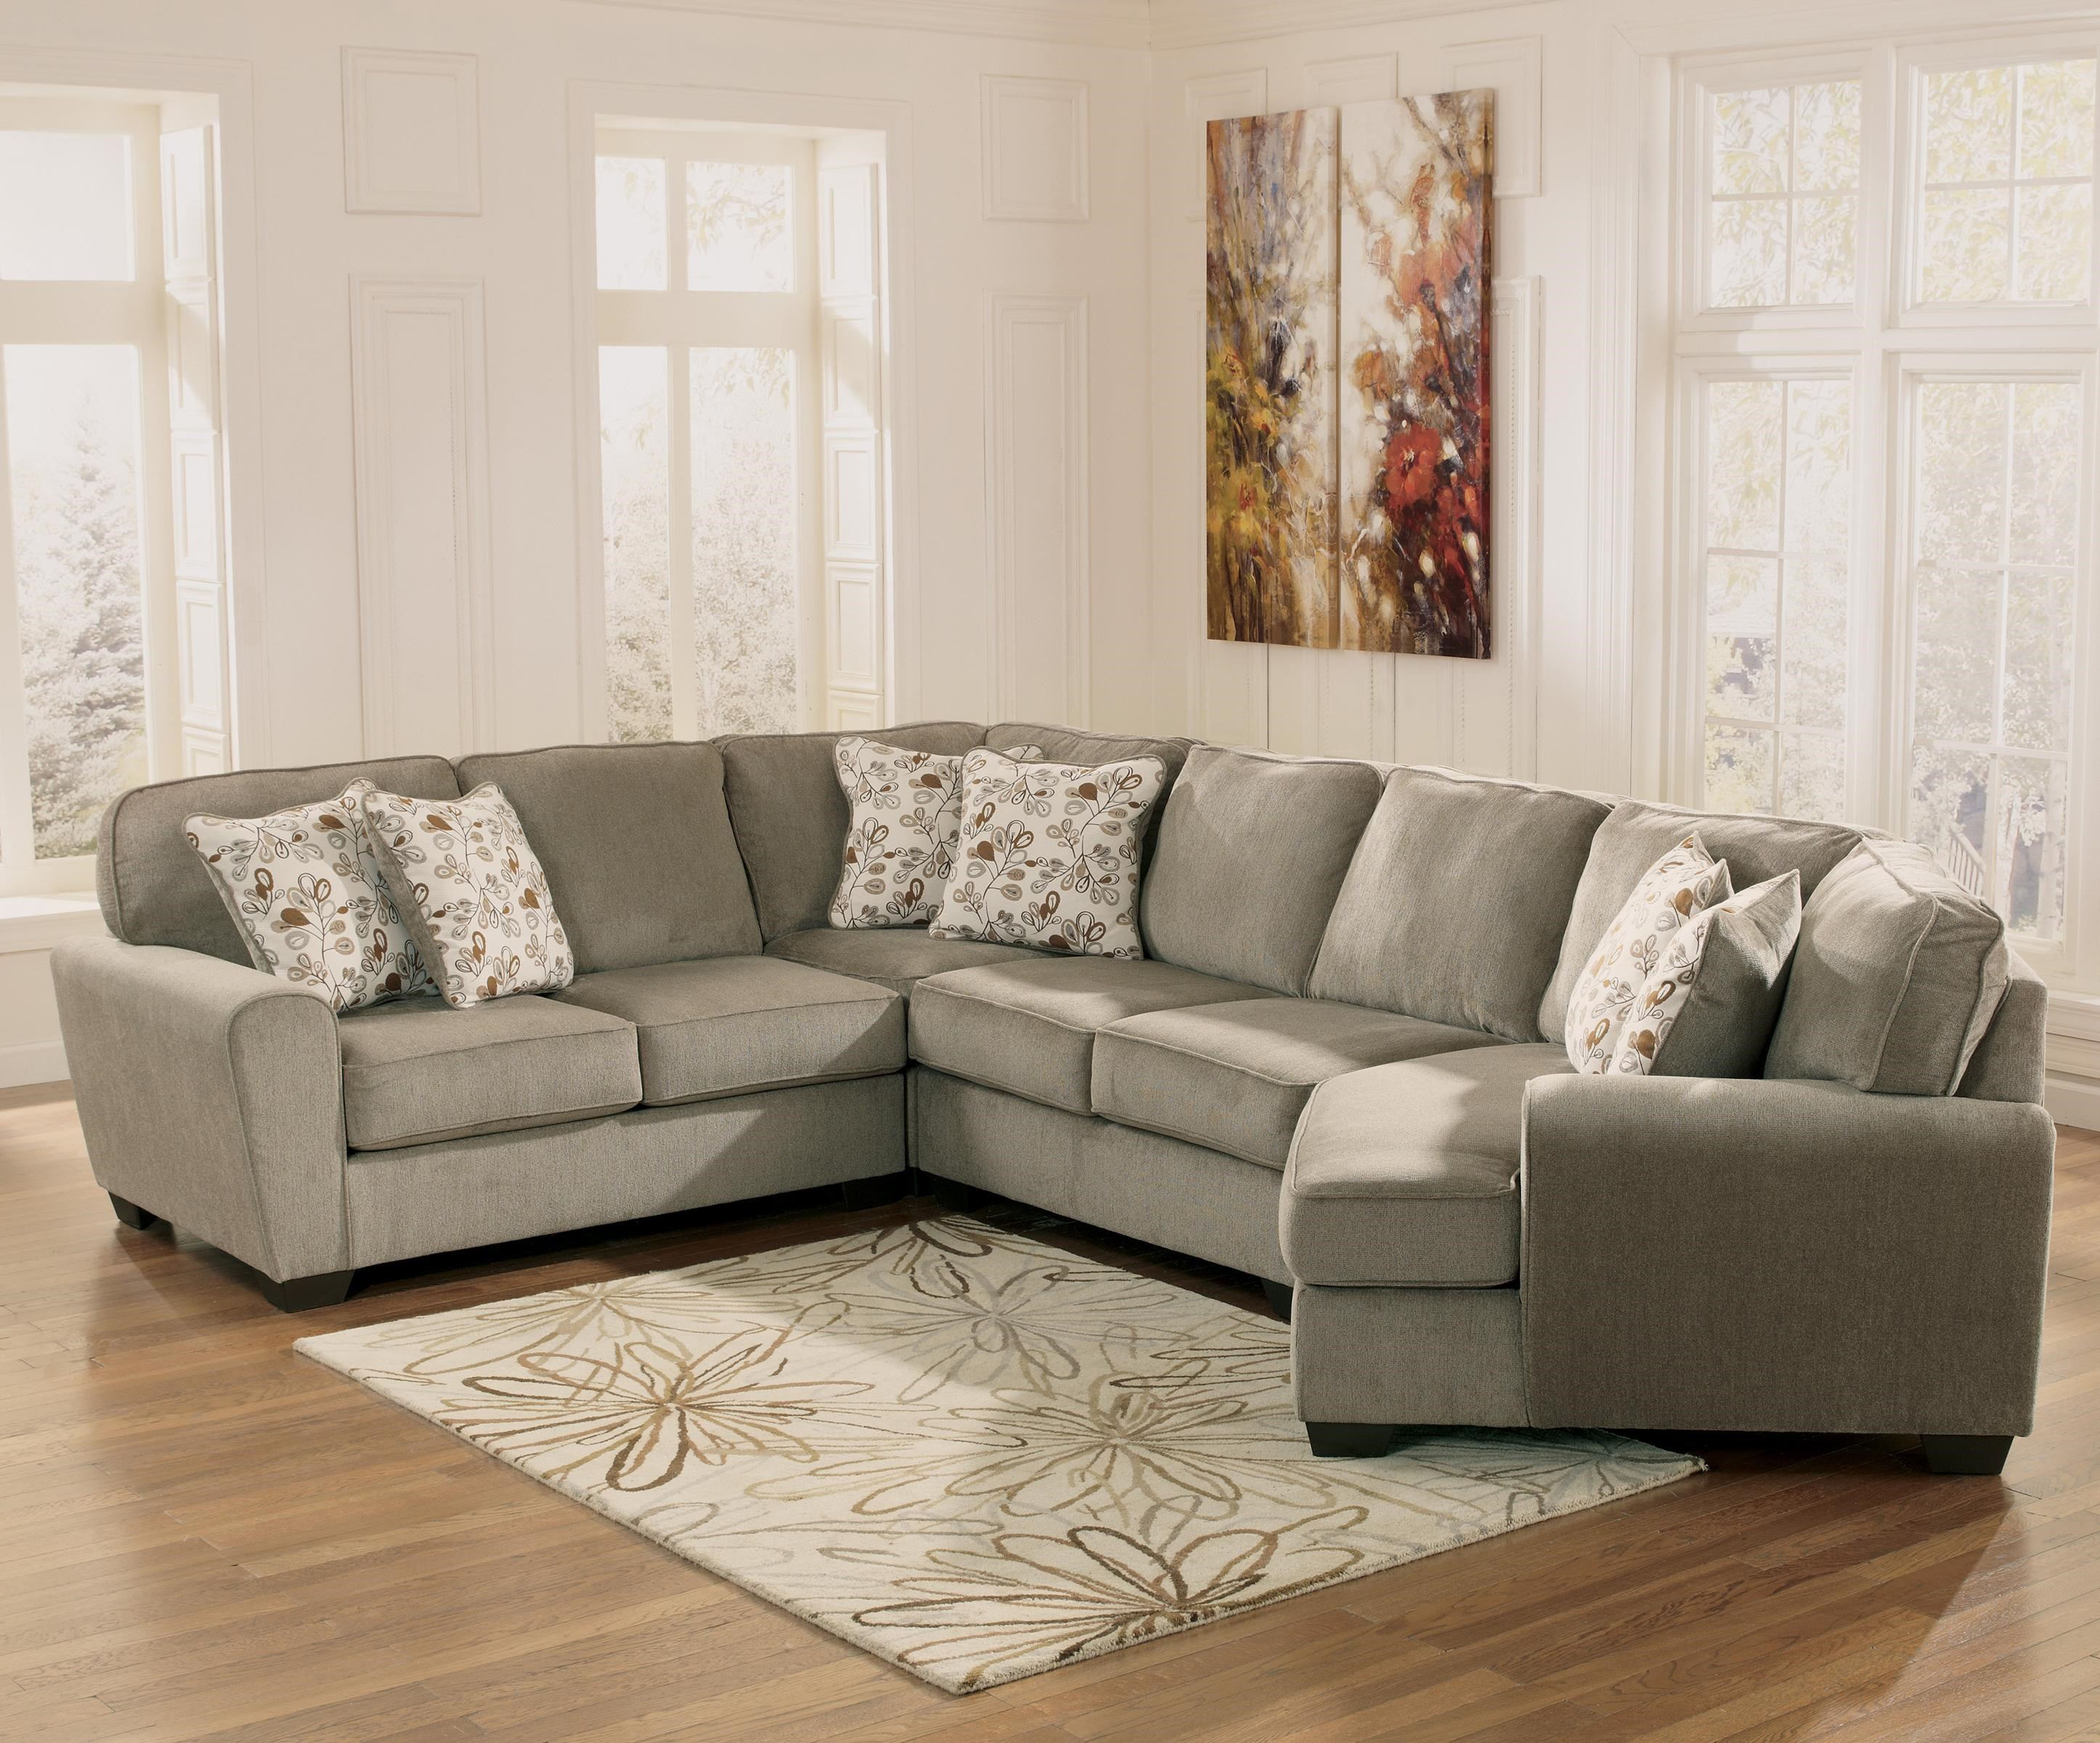 Charmant Patina 4 Piece Small Sectional With Right Cuddler By Ashley Furniture At  Rotmans